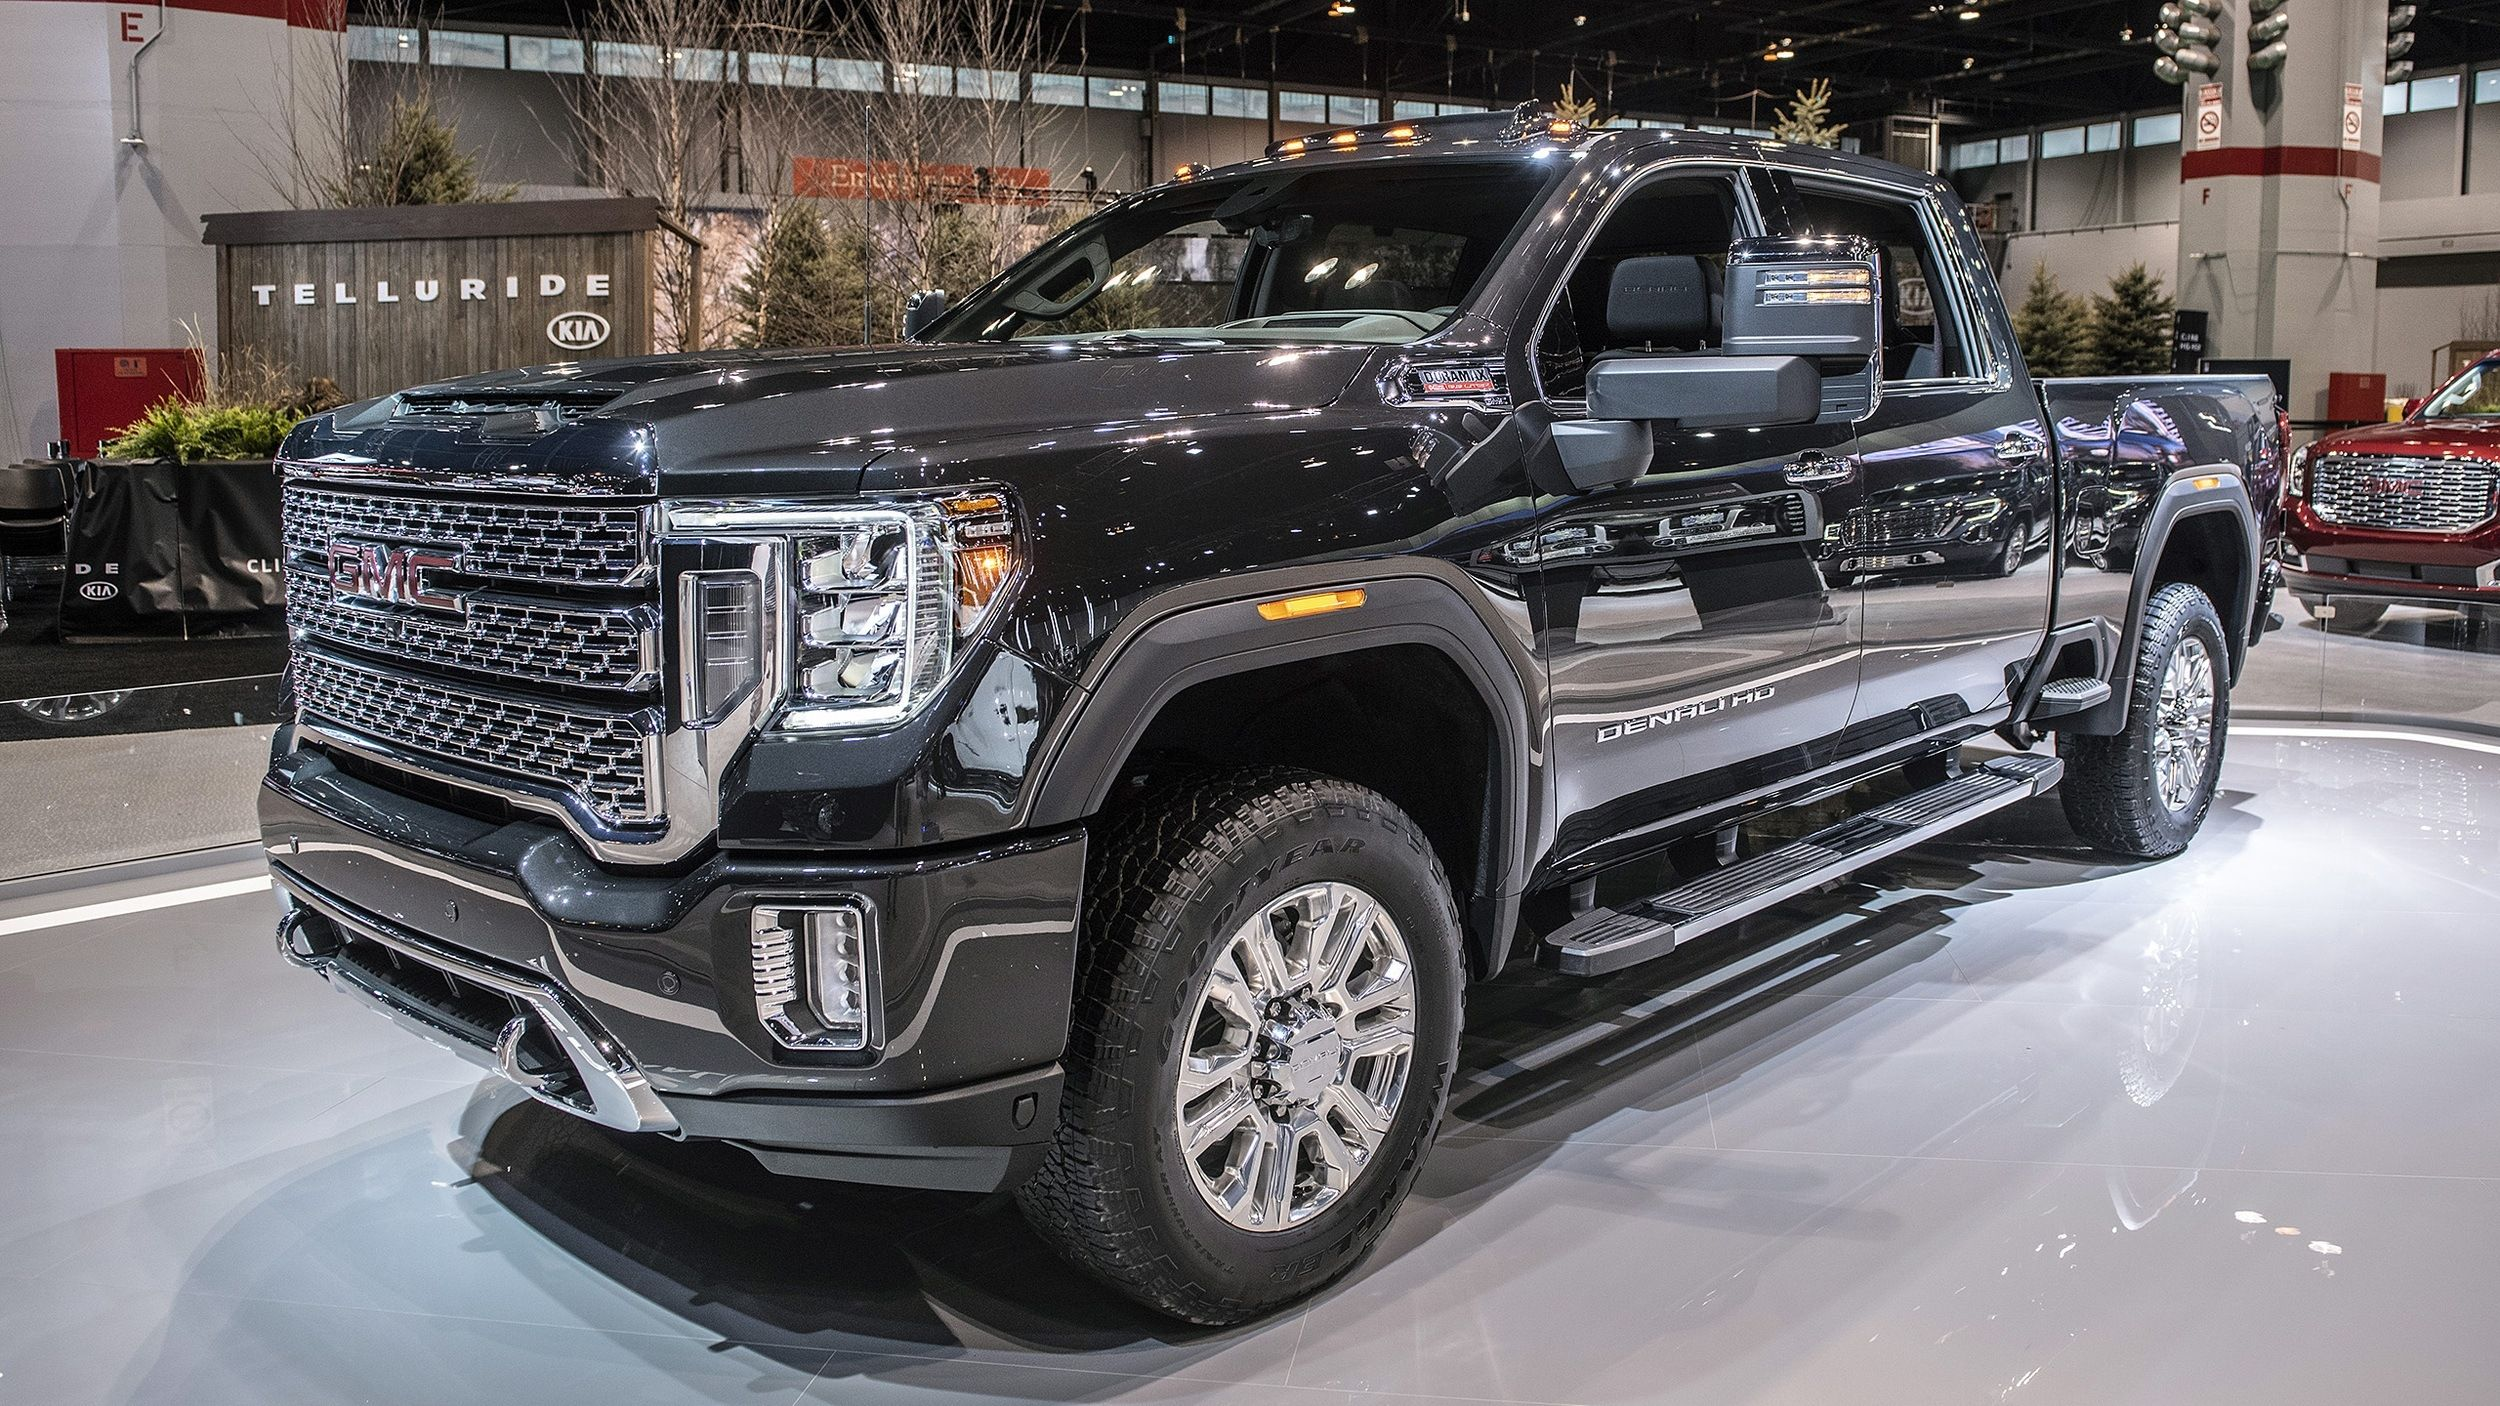 2020 Gmc Sierra Denali Hd Chicago 2019 Photo Gallery Autoblog